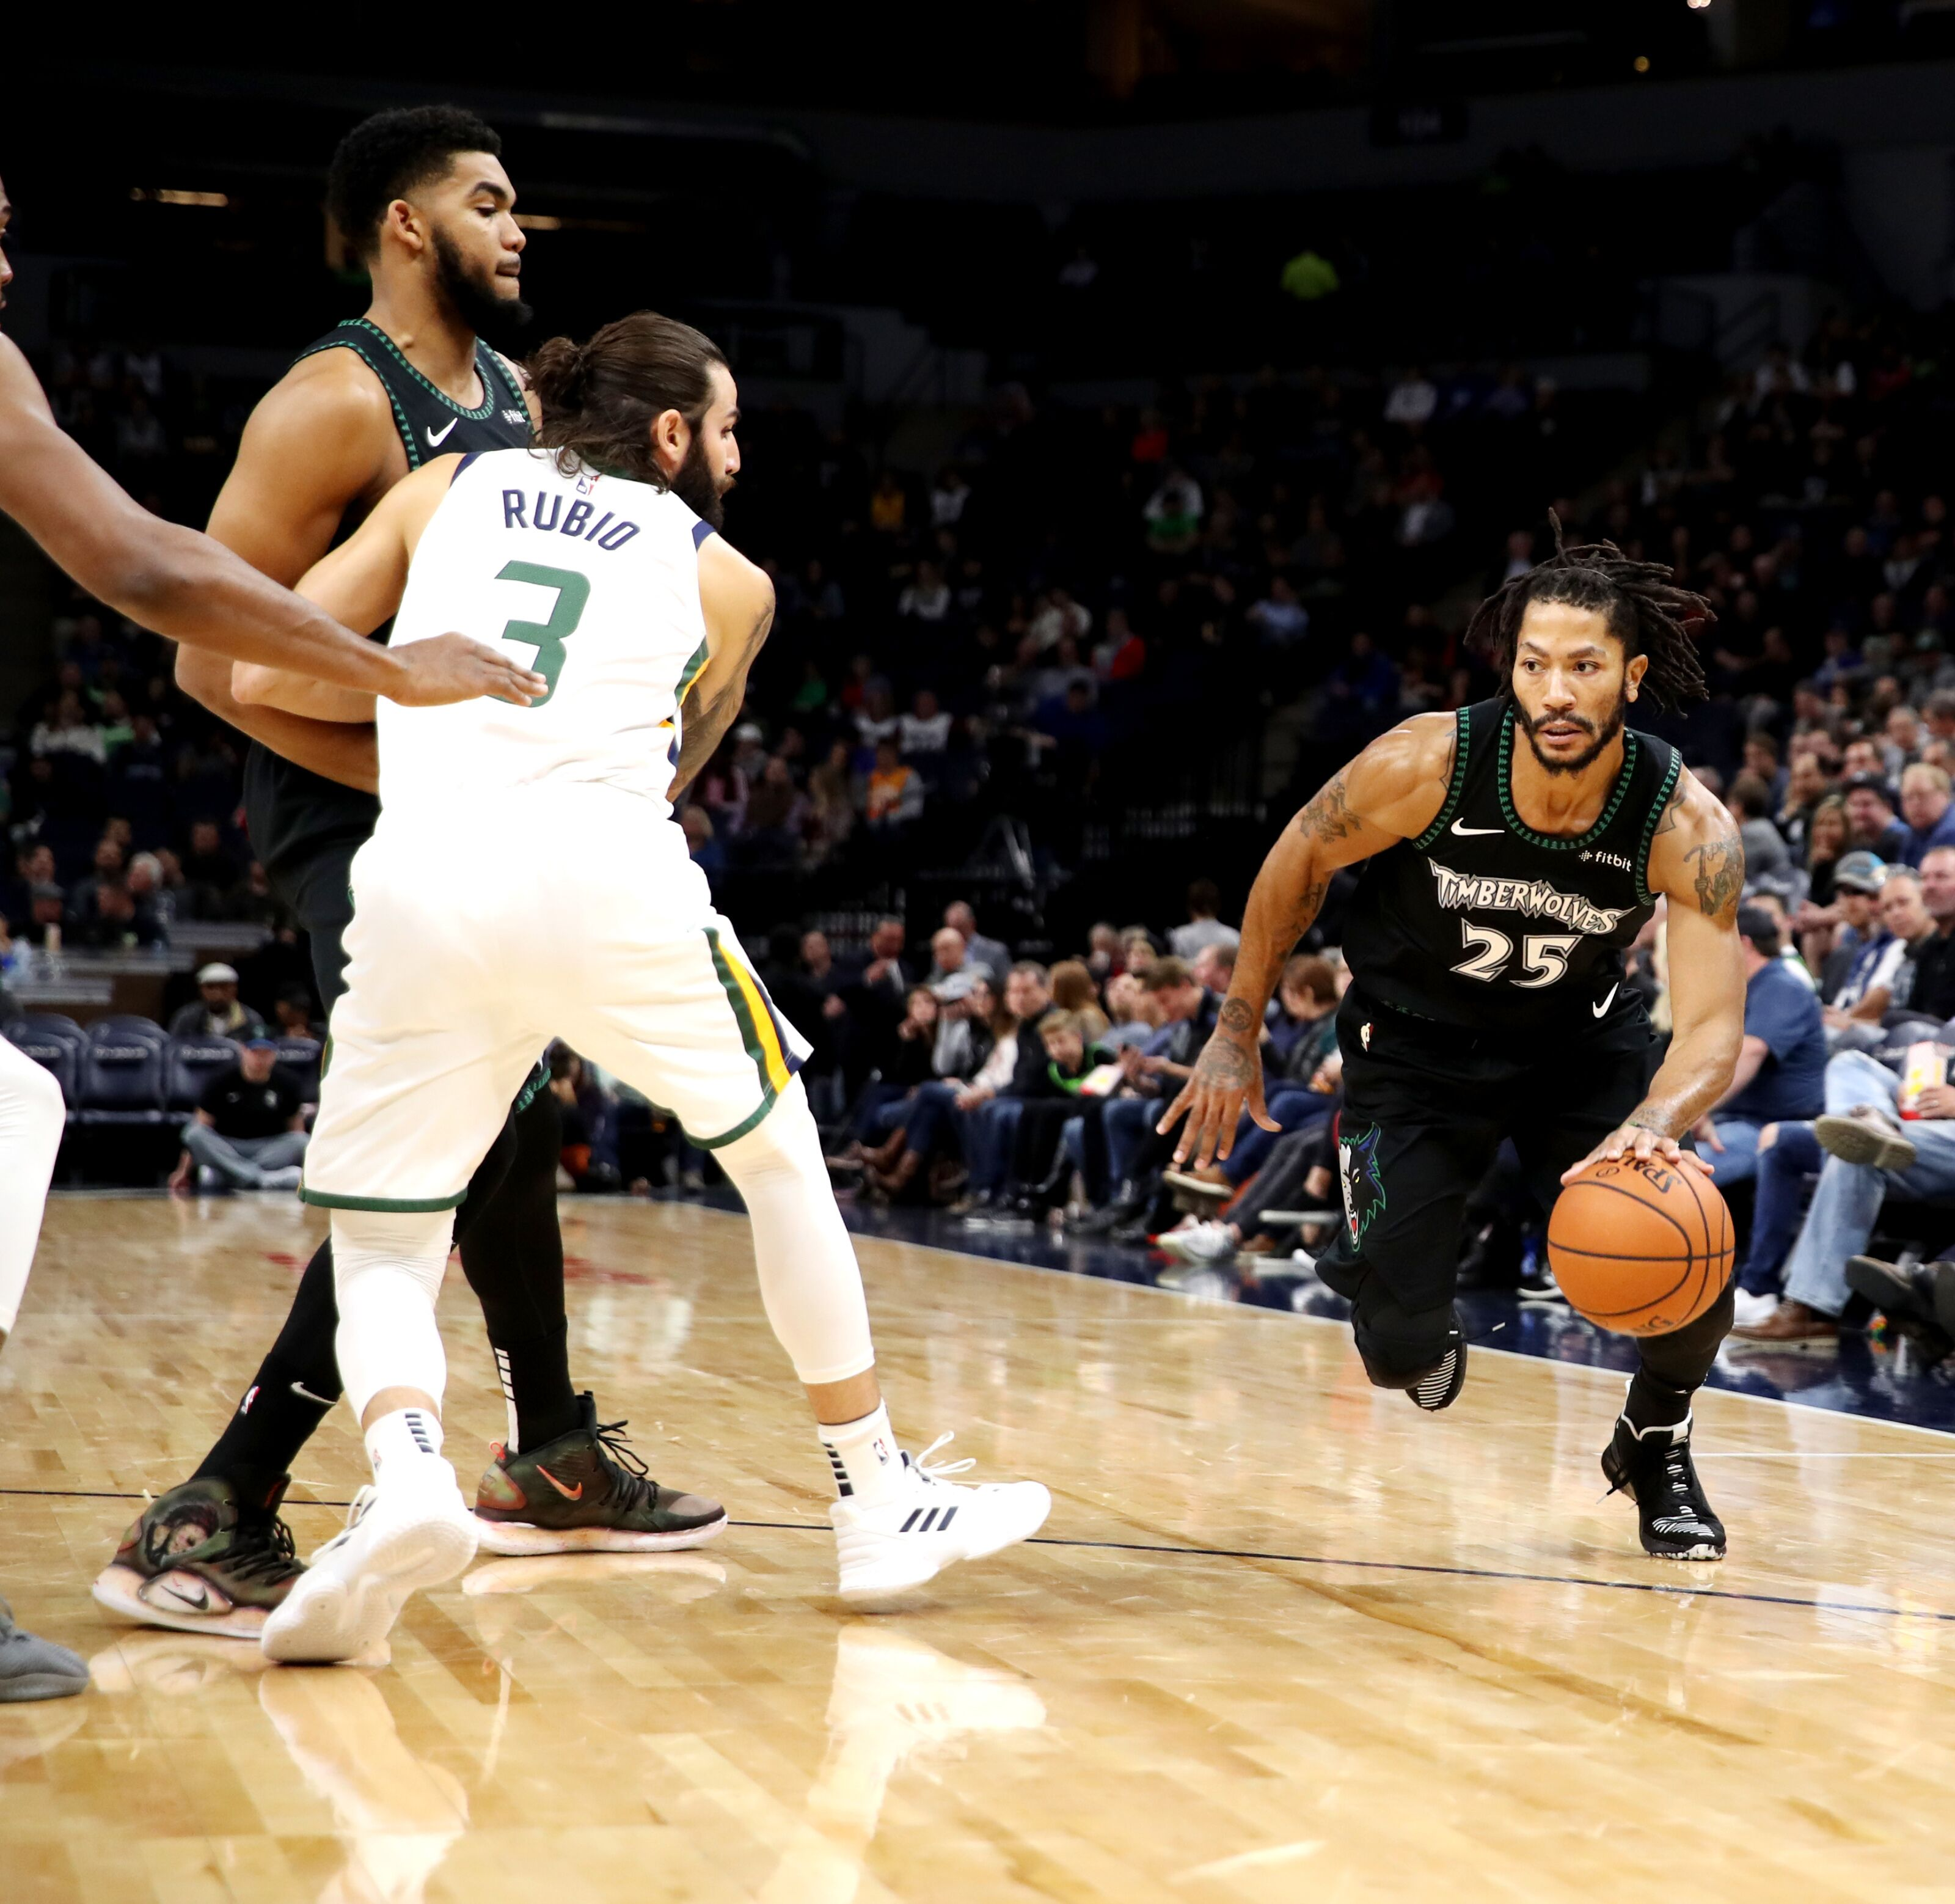 aad8cdcb Vintage D-Rose drops career-high 50 points, Utah Jazz lose in thriller